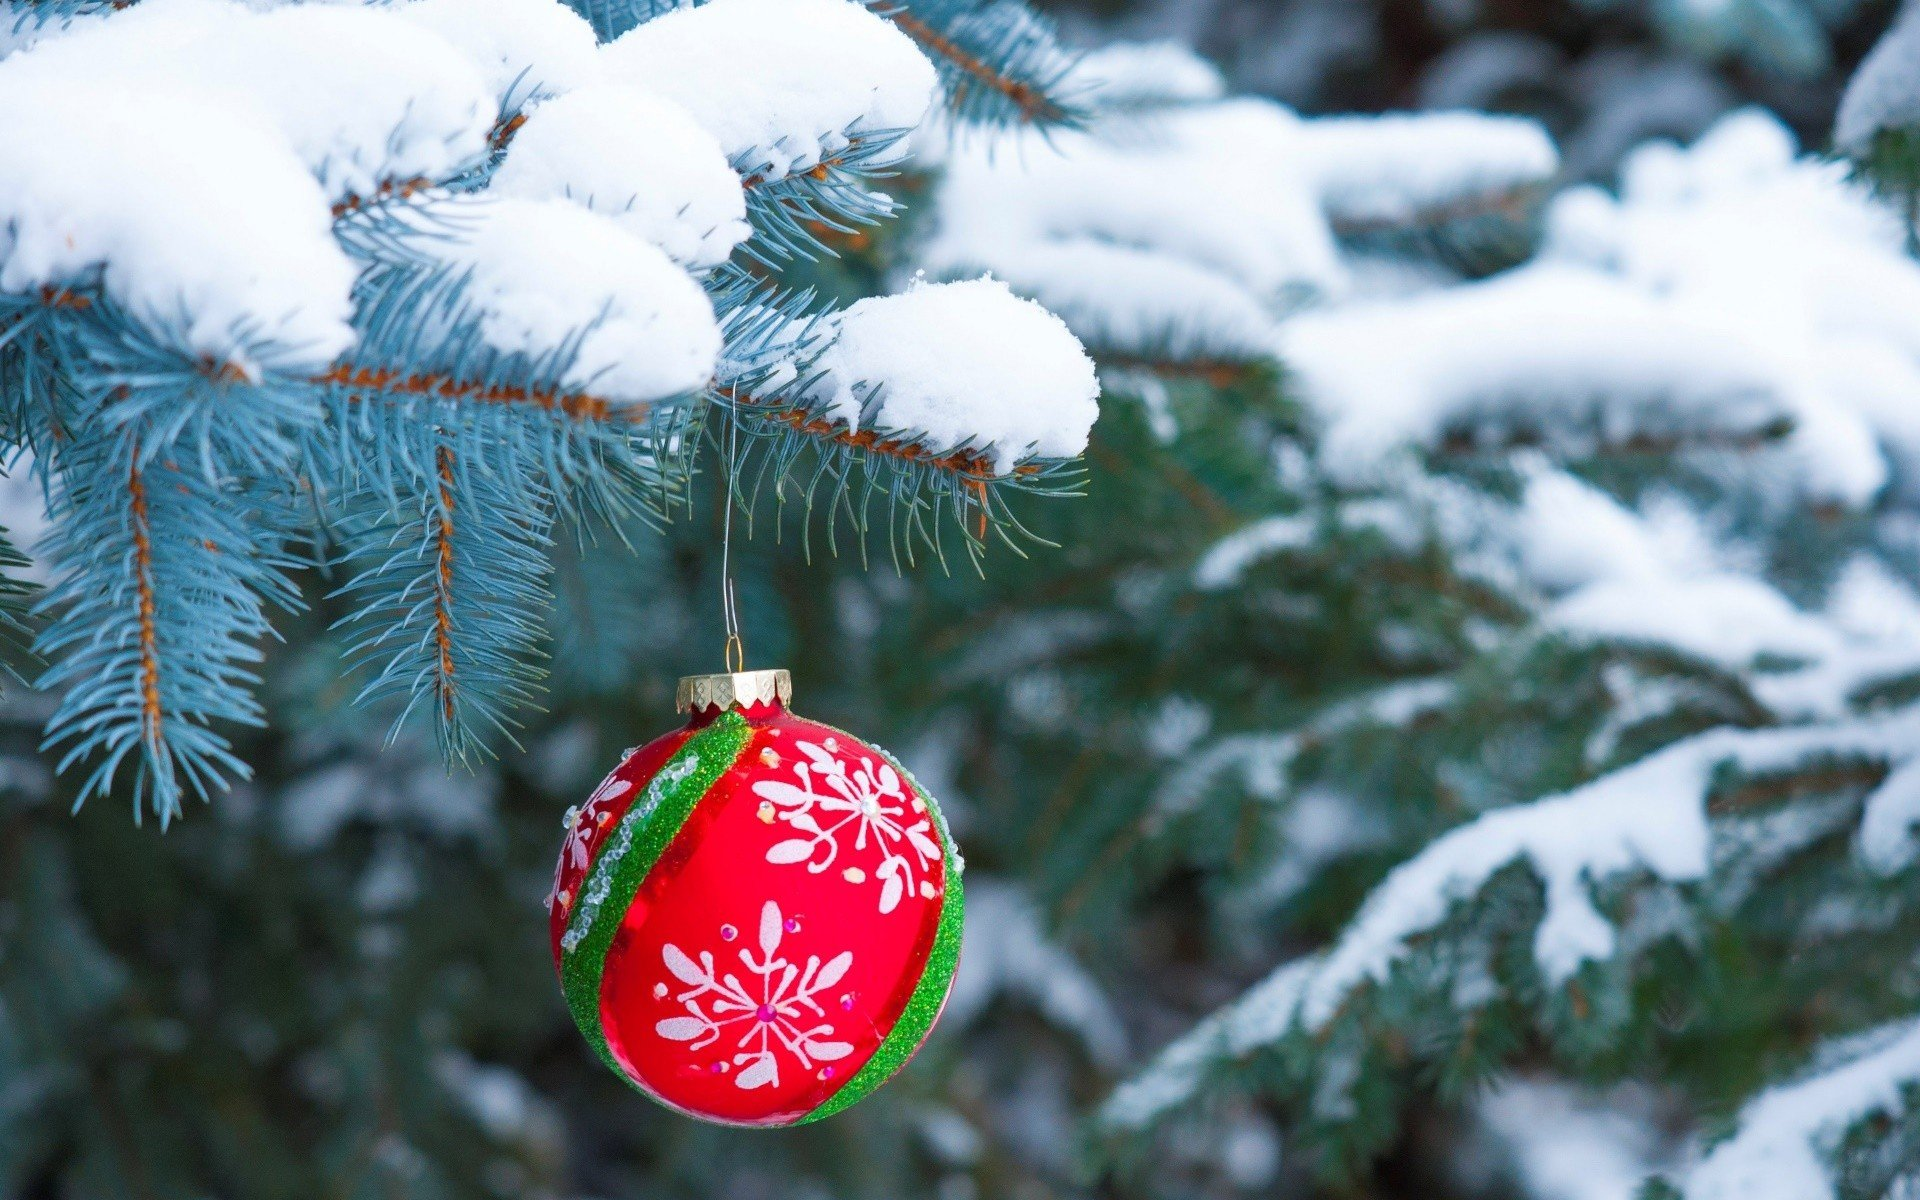 Winter, Snow, Christmas Ornaments, Christmas HD Wallpapers